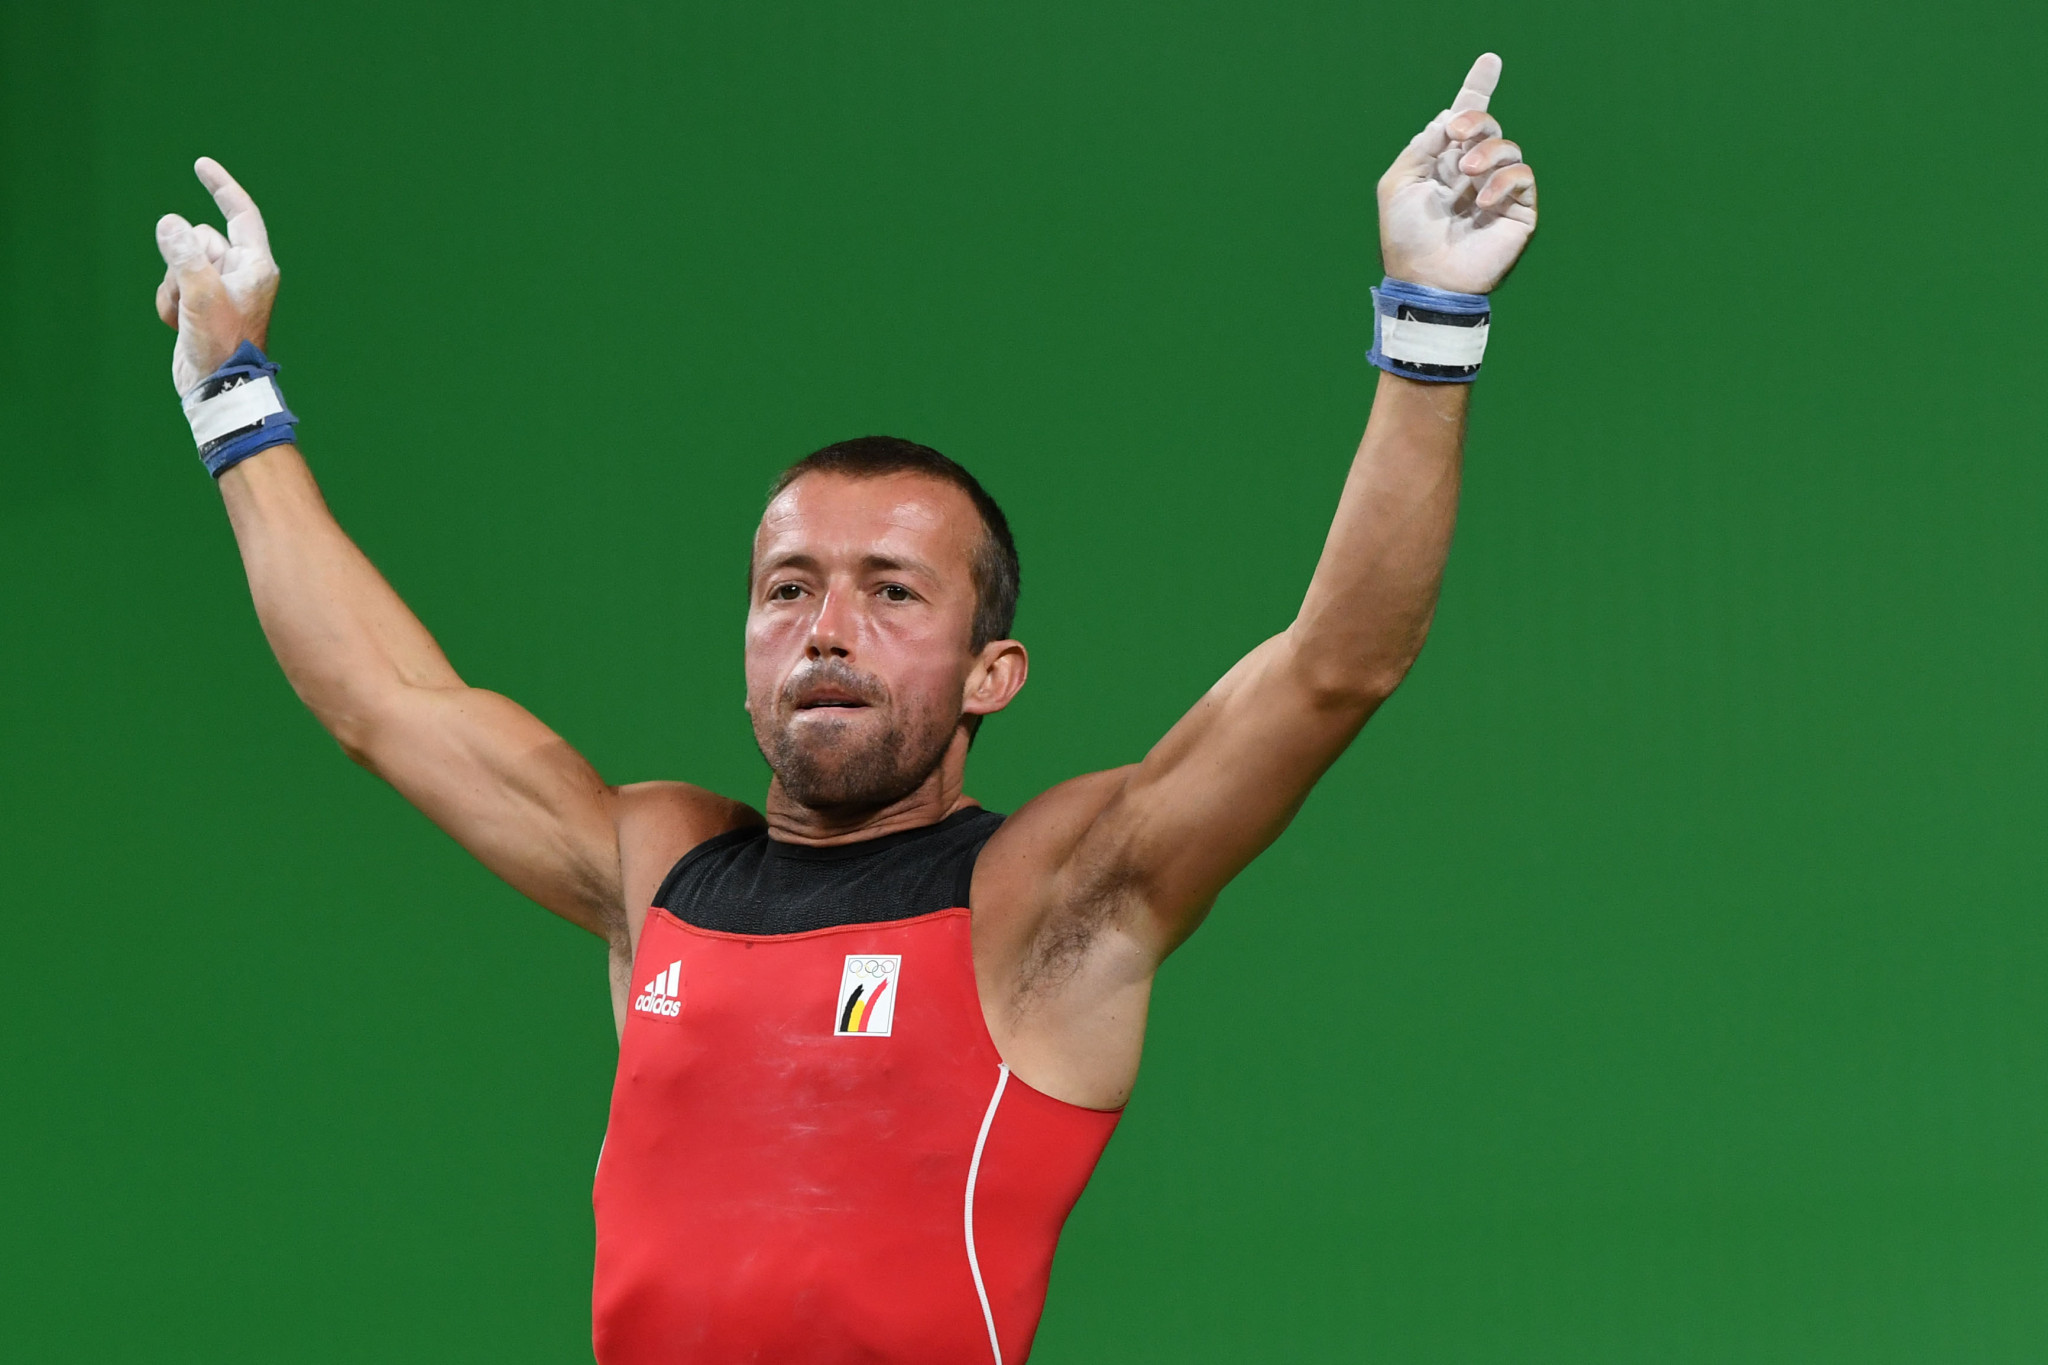 Tom Goegebuer, now President of the Belgian Weightlifting Federation, rejected a suggestion that he had anything to do with the new Olympic qualification system, or that it unduly benefited Belgian athletes